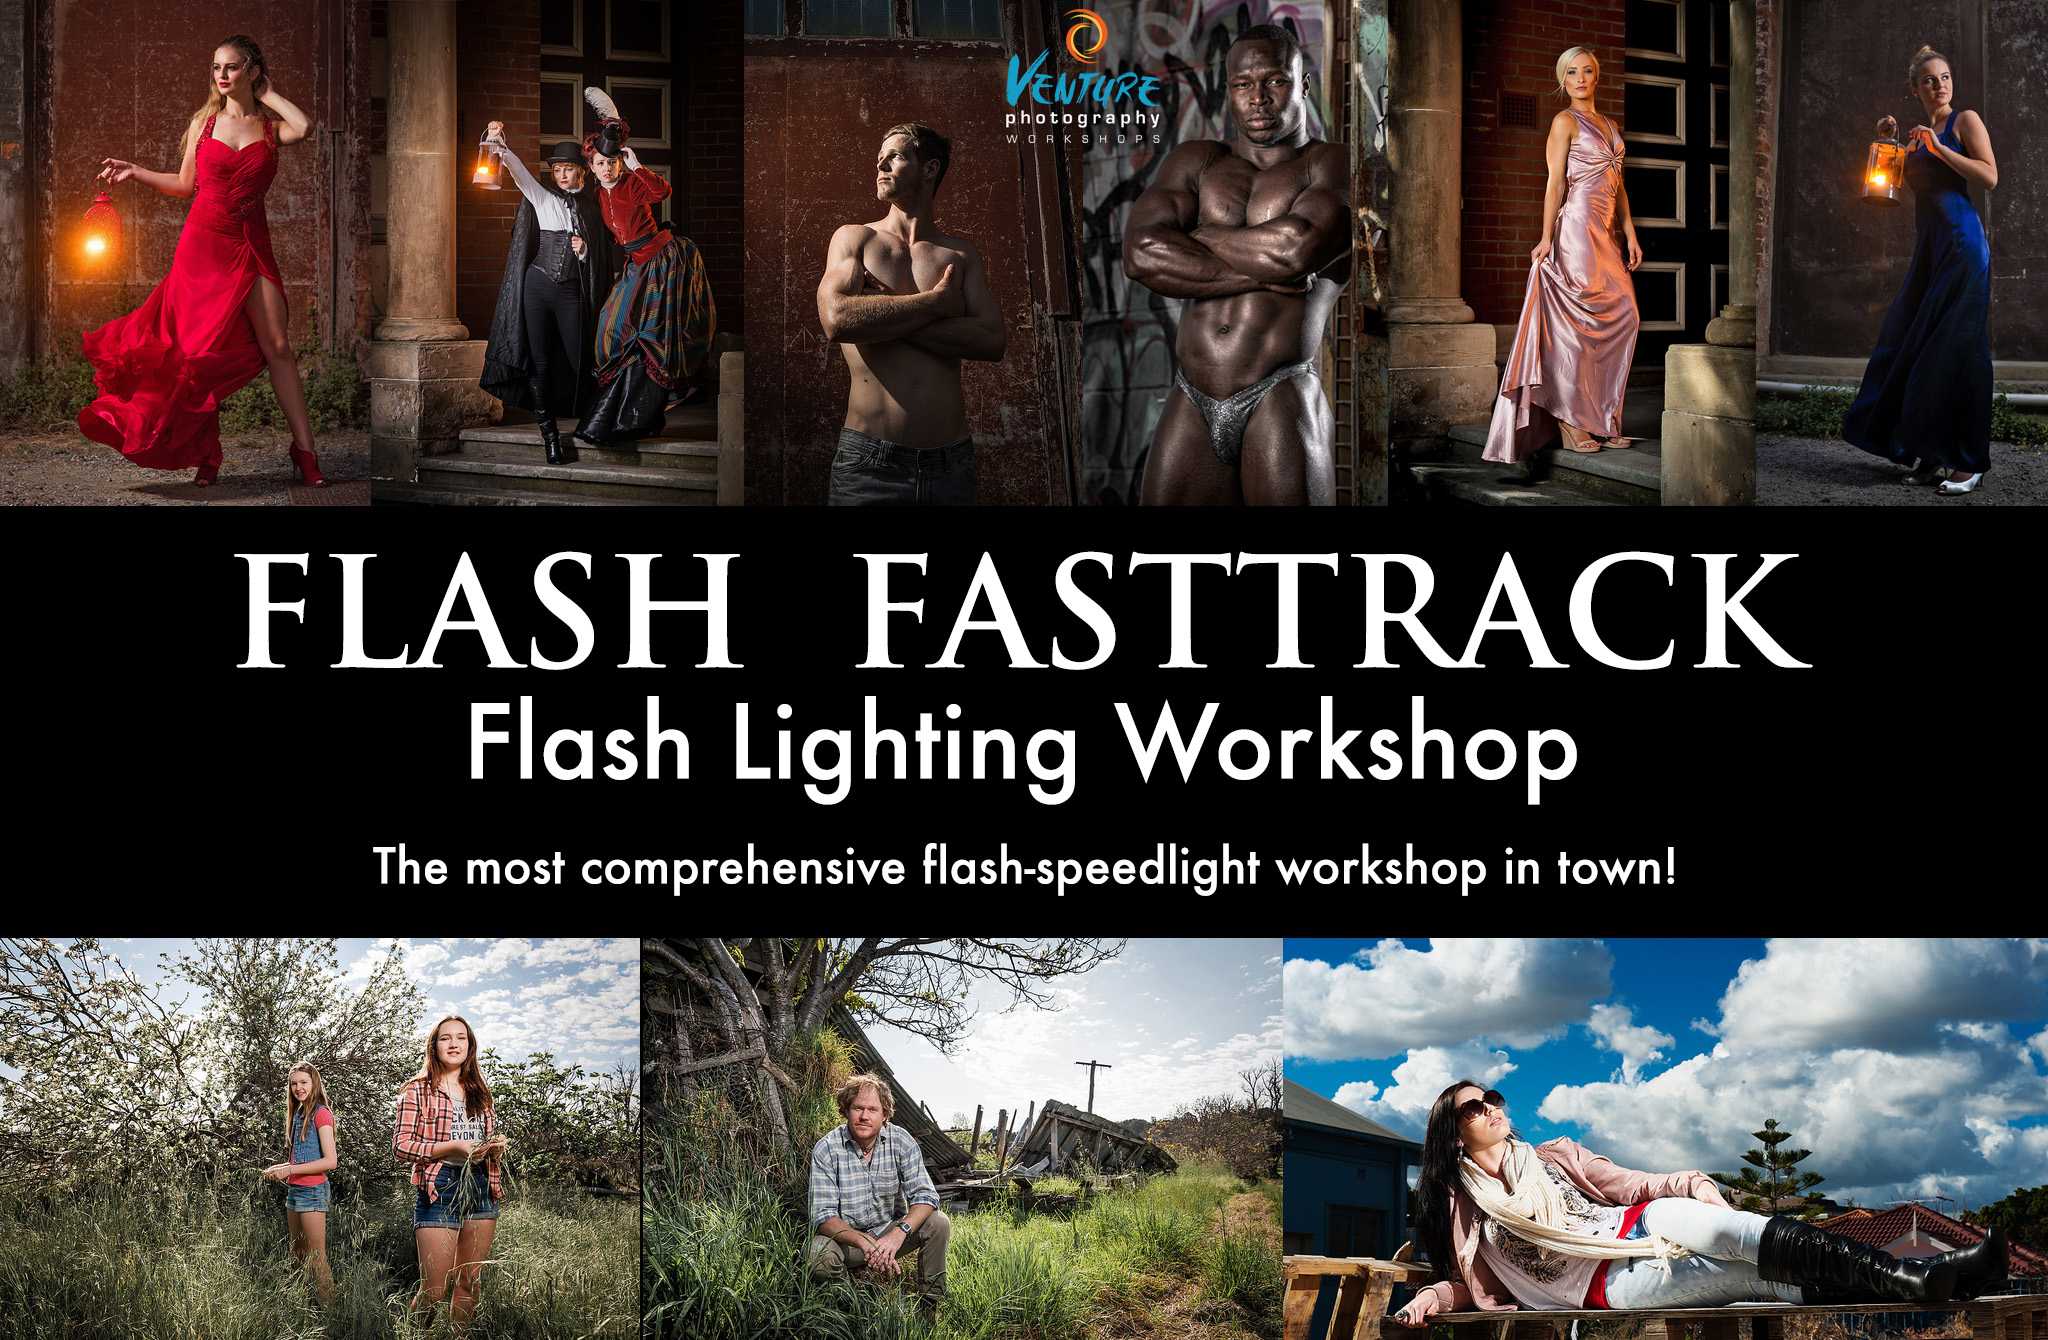 Flash Fasttrack Workshop